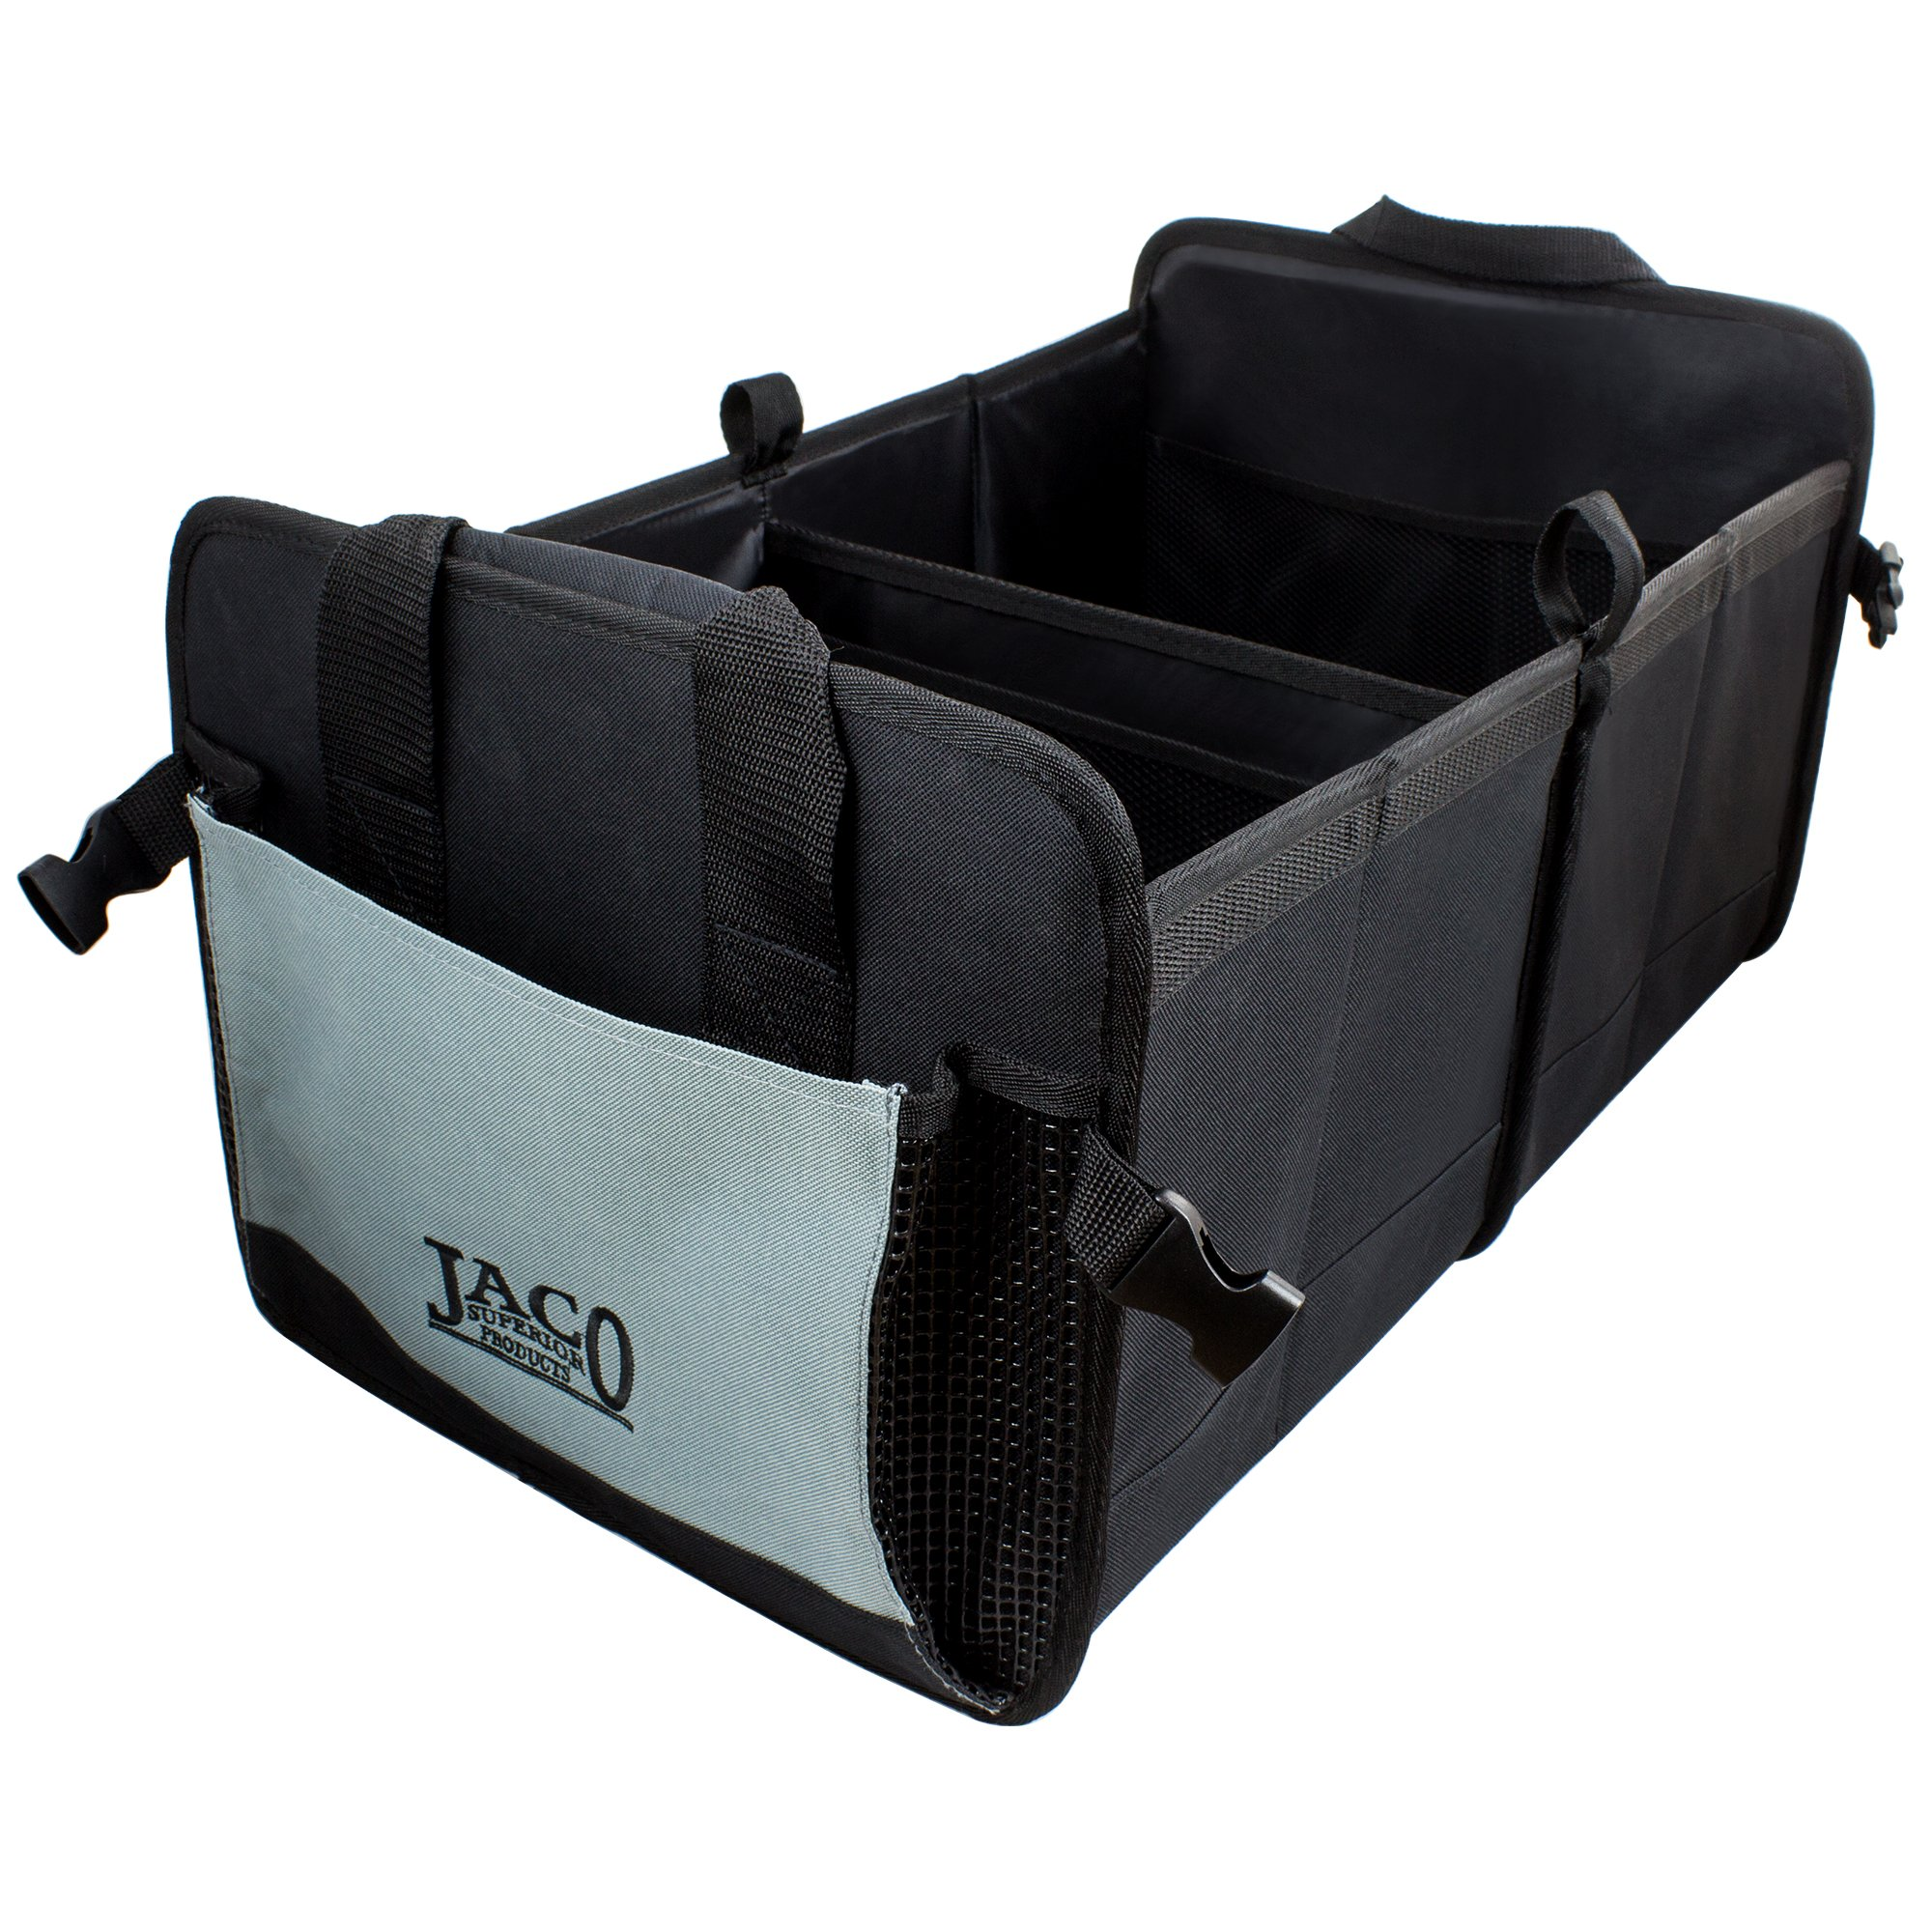 JACO Superior Products JACO CargoPro Trunk Organizer - Premium Auto Cargo Storage Container for Car, Truck, SUV - Heavy Duty (Black/Grey)